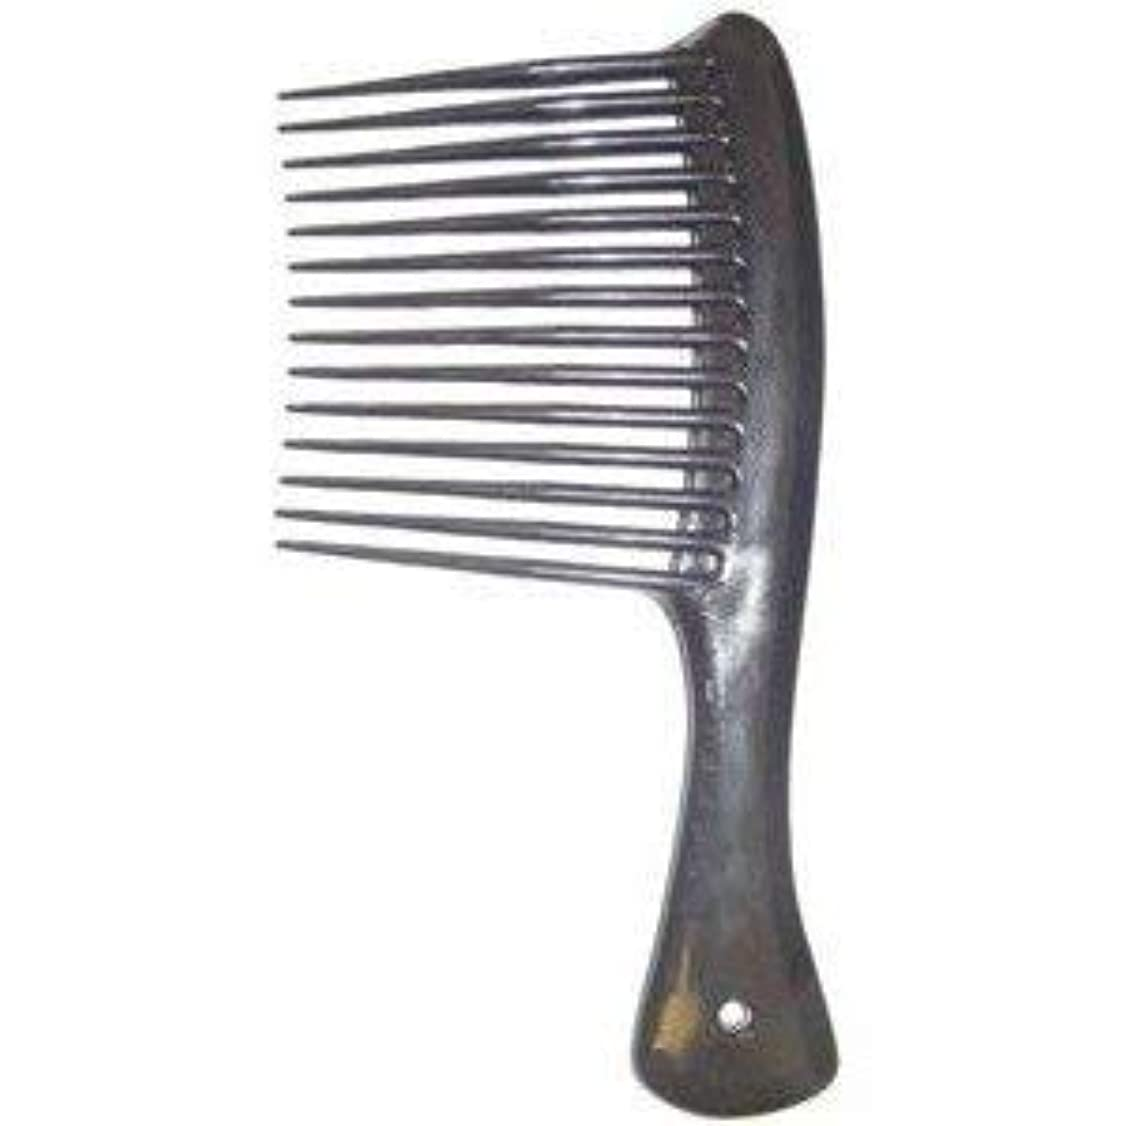 集中的な負担スラックLarge Tooth Shampoo Detangling Comb Rack Hair Comb (Black) [並行輸入品]